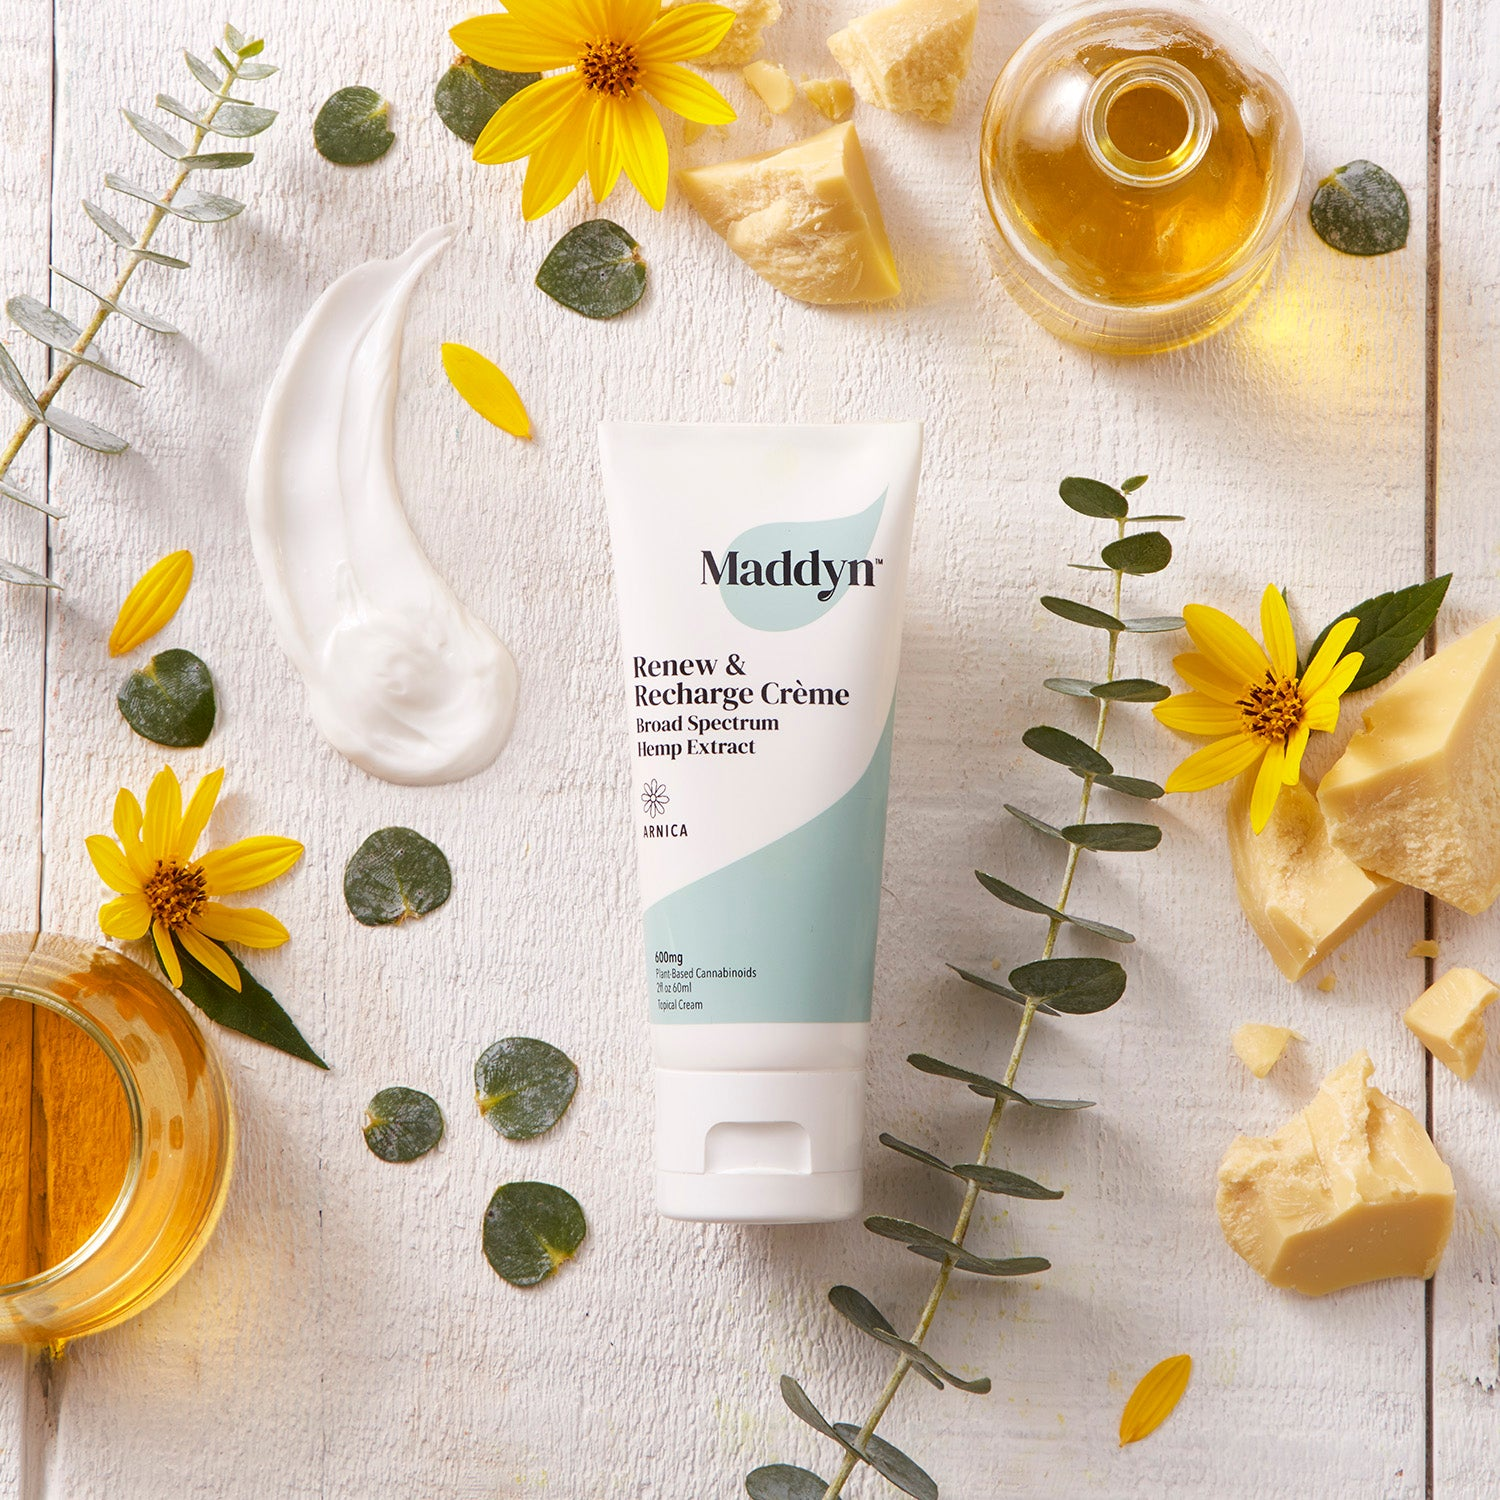 Maddyn topical CBD cream with cocoa butter, arnica, and eucalyptus oil